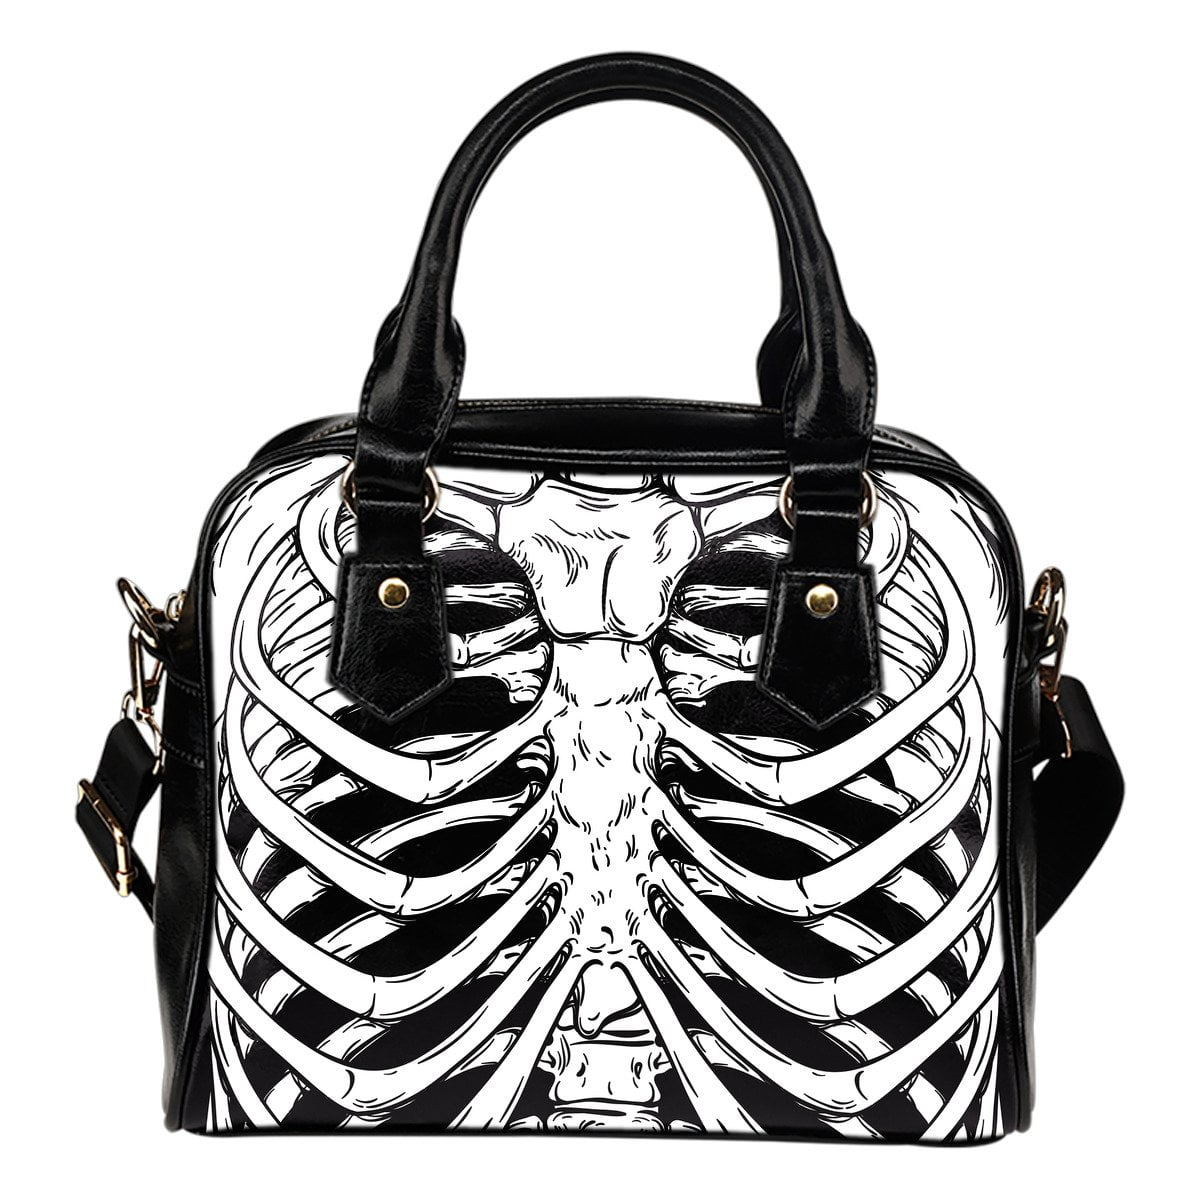 Rib Cage Shoulder Handbag